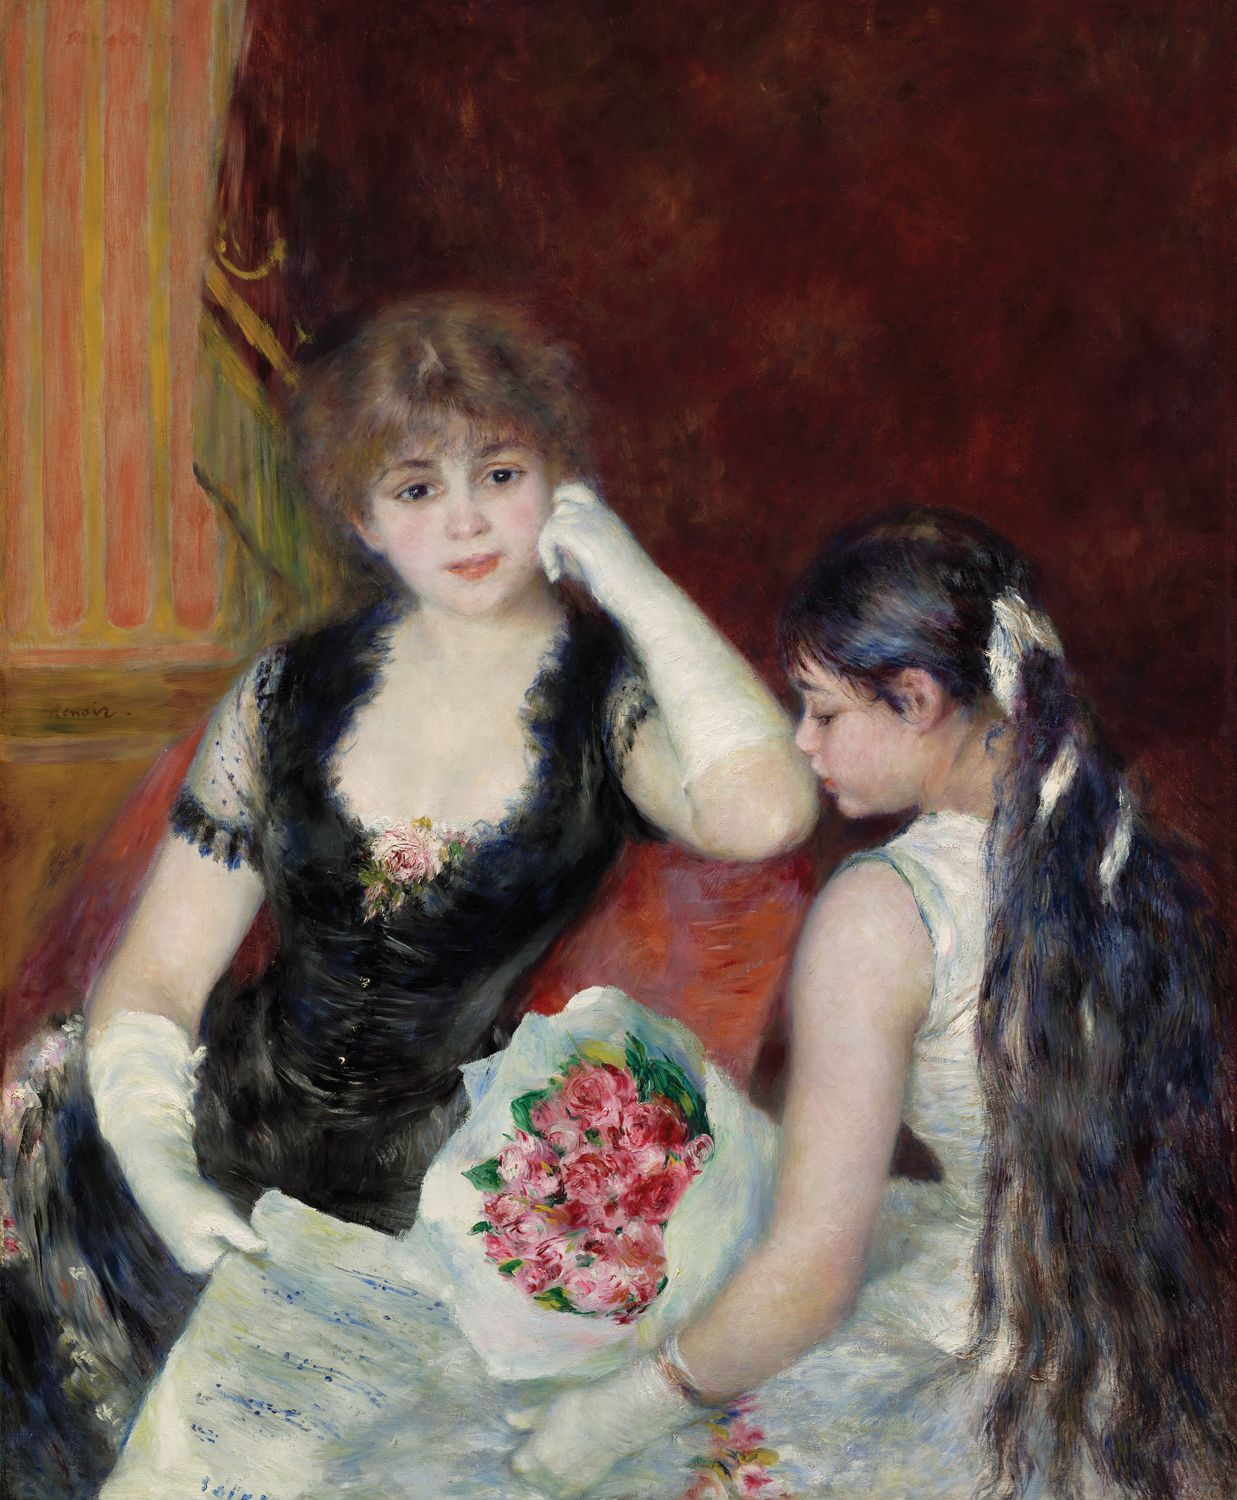 Pierre Auguste Renoir: At the Concert (a/k/a Box at the Opera), 1880. Oil on canvas. Sterling and Francine Clark Art Institute, Williamstown, MA. #Renoir #Impressionism #realism ⌘ http://www.clarkart.edu/museum/featuredObjectDetail.cfm?ID=1